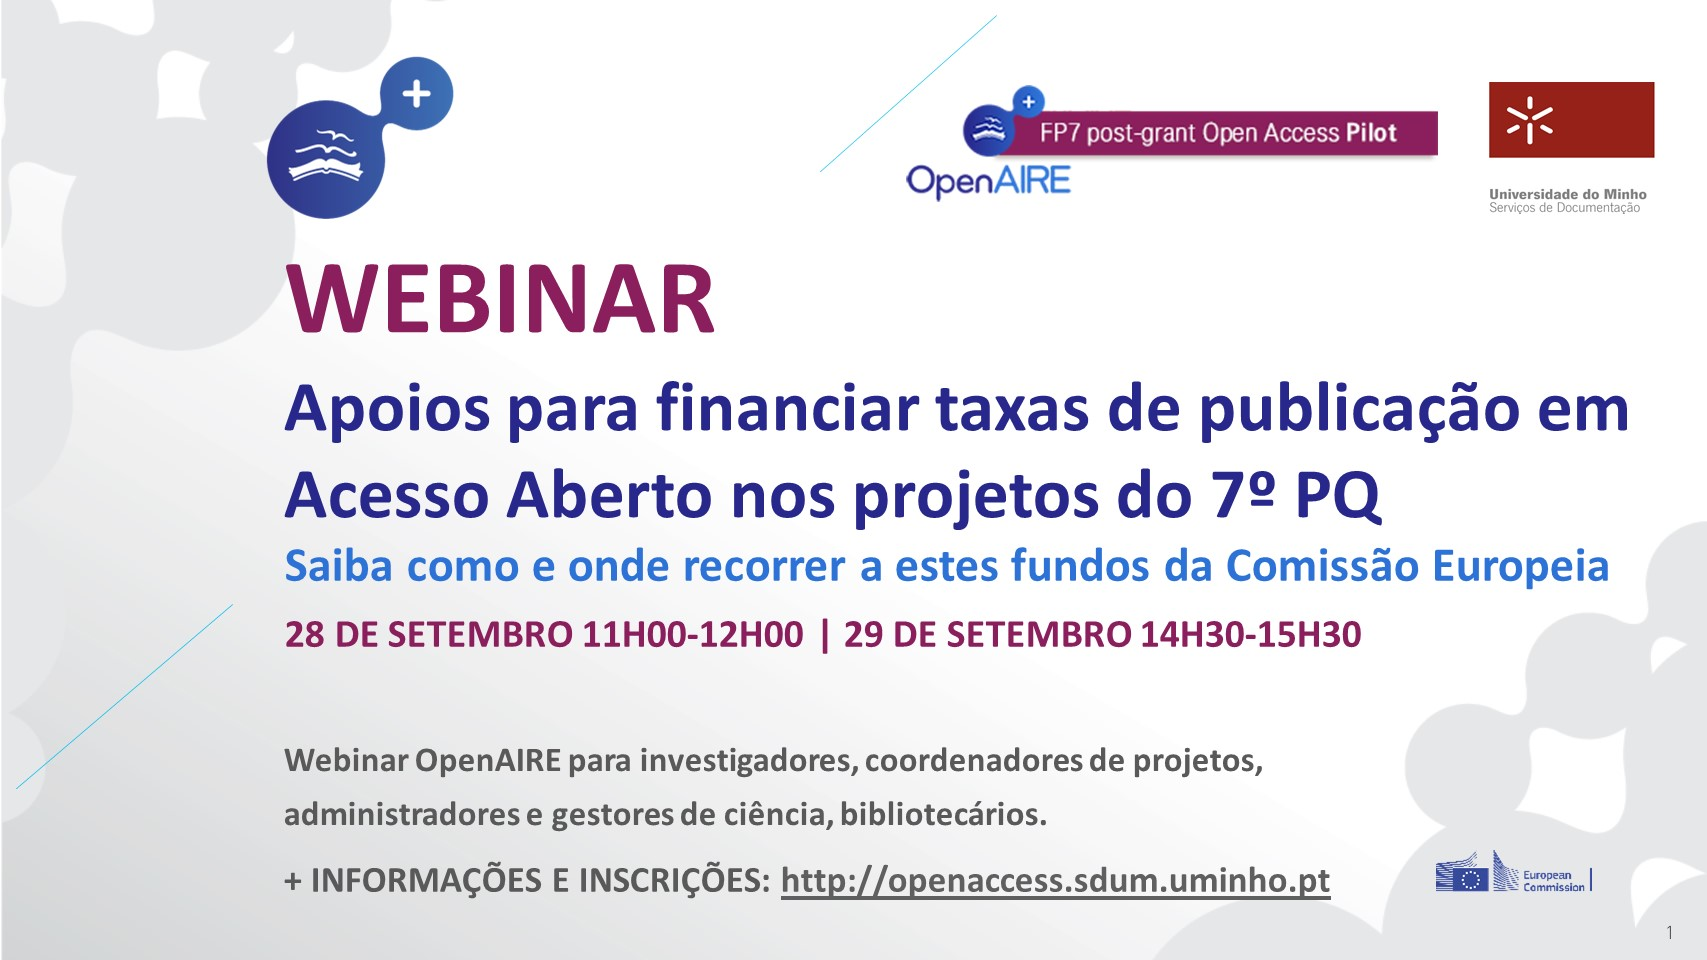 WebinarOpenAIRE_setembro2015_publishingfunds